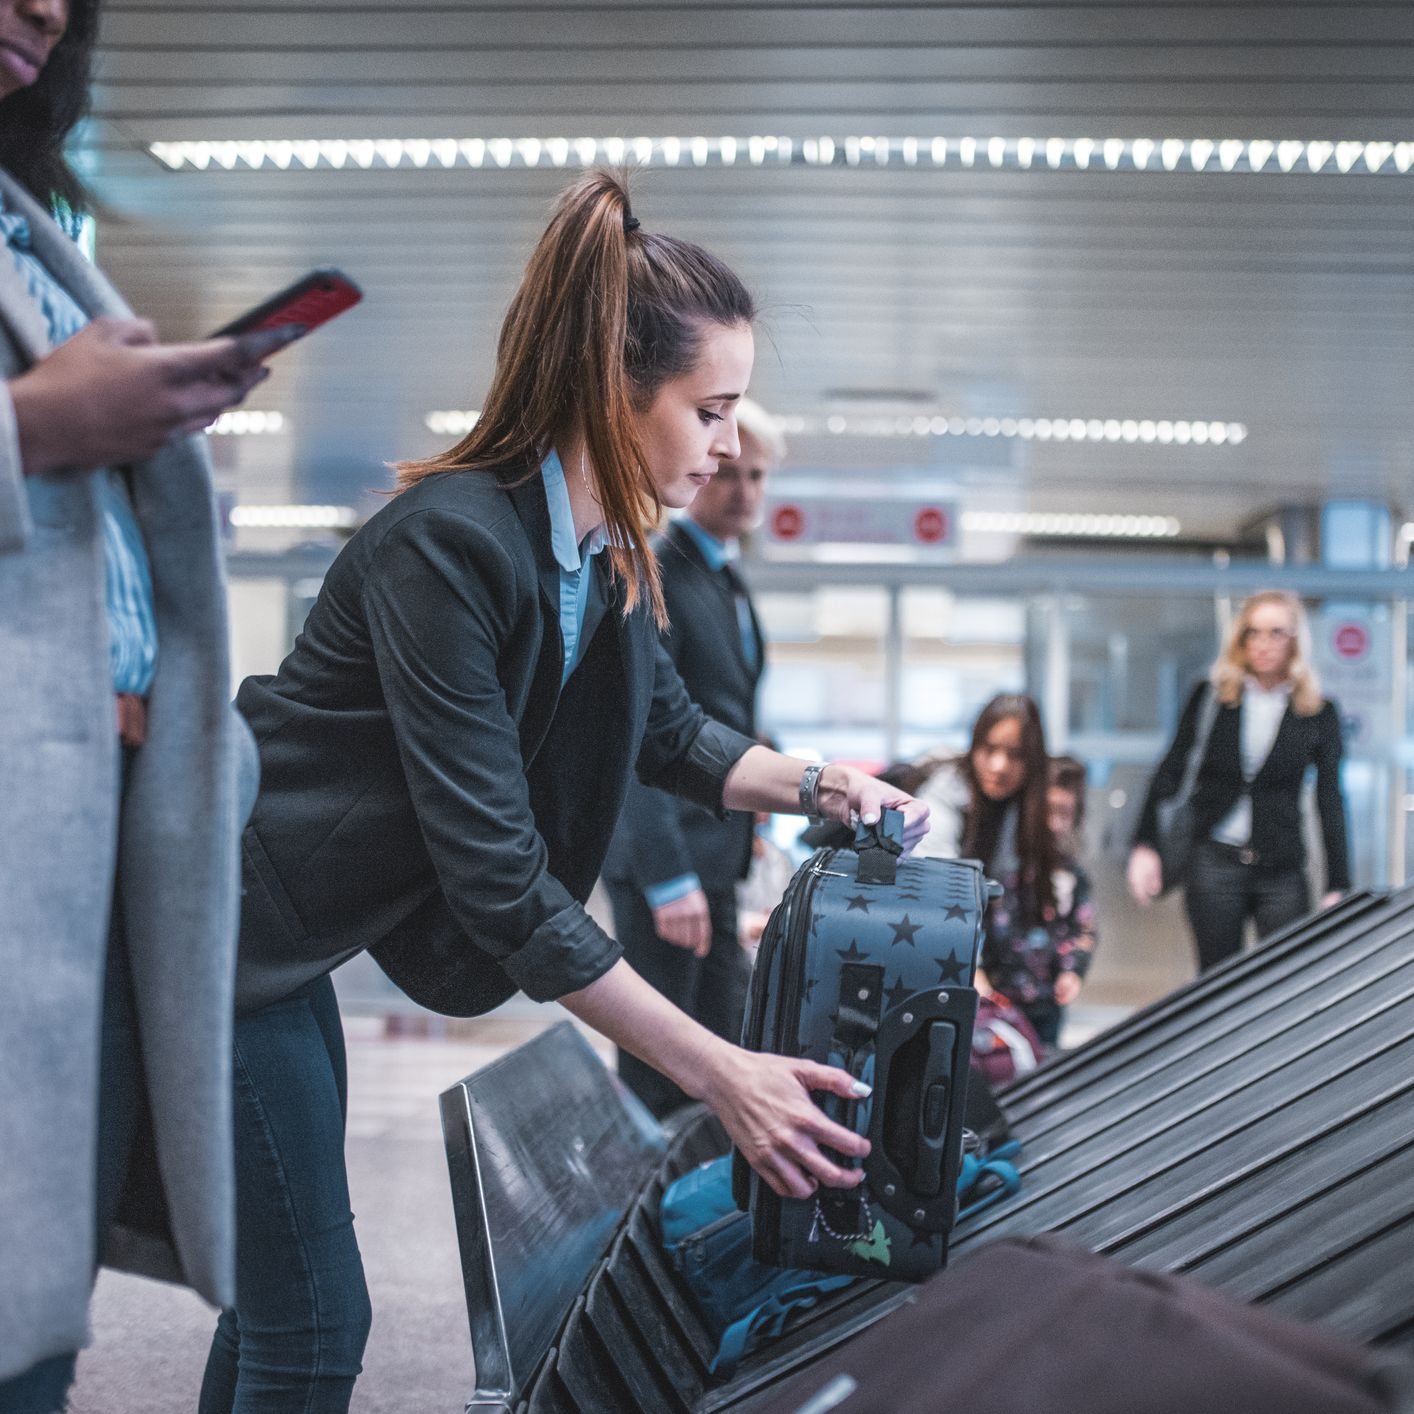 The 8 Best Collapsible Luggage Items of 2019